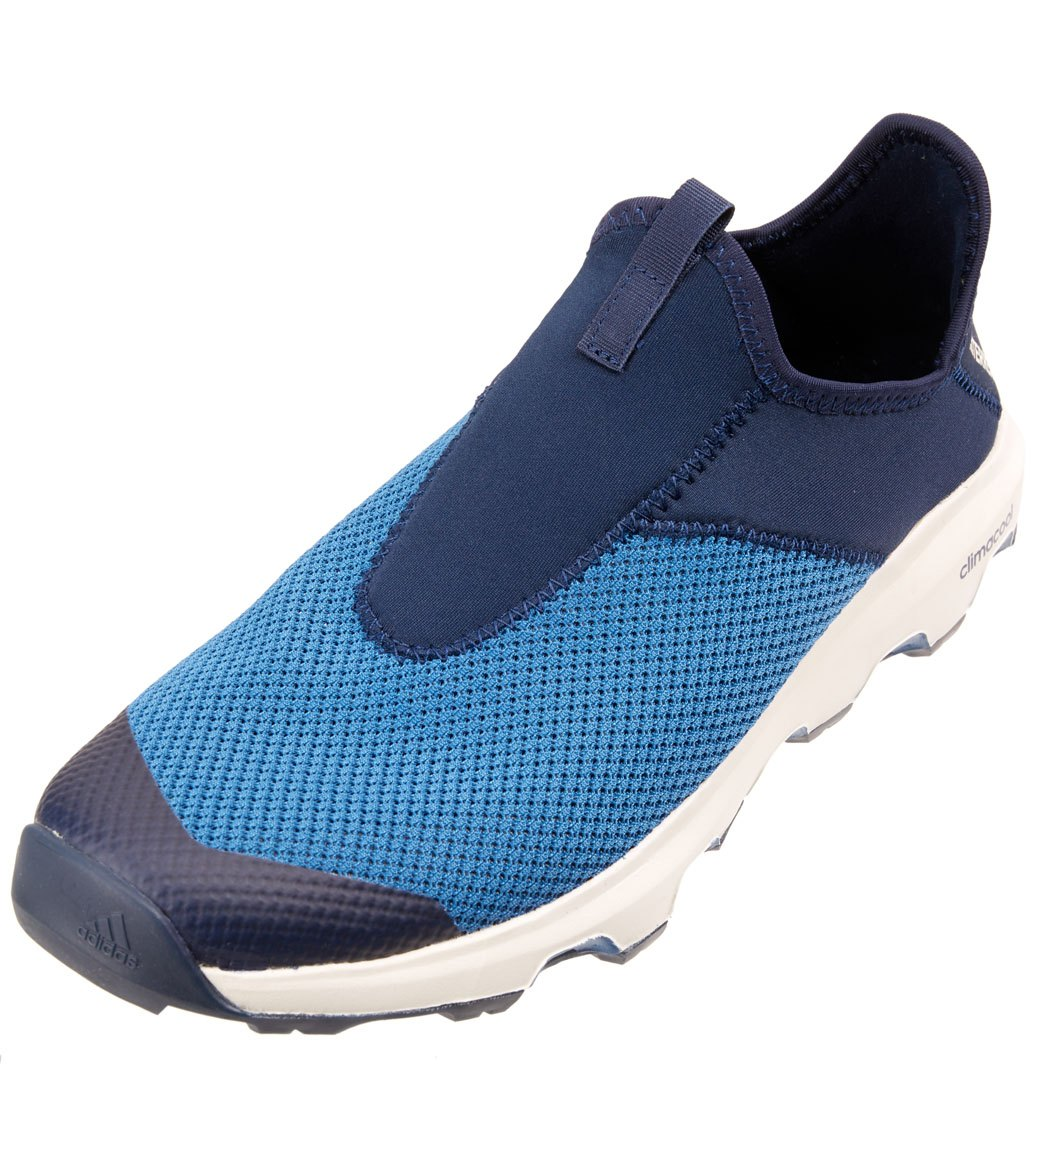 ... Adidas Men s Terrex Climacool Voyager Slip On Water Shoe. Share 475a928aa